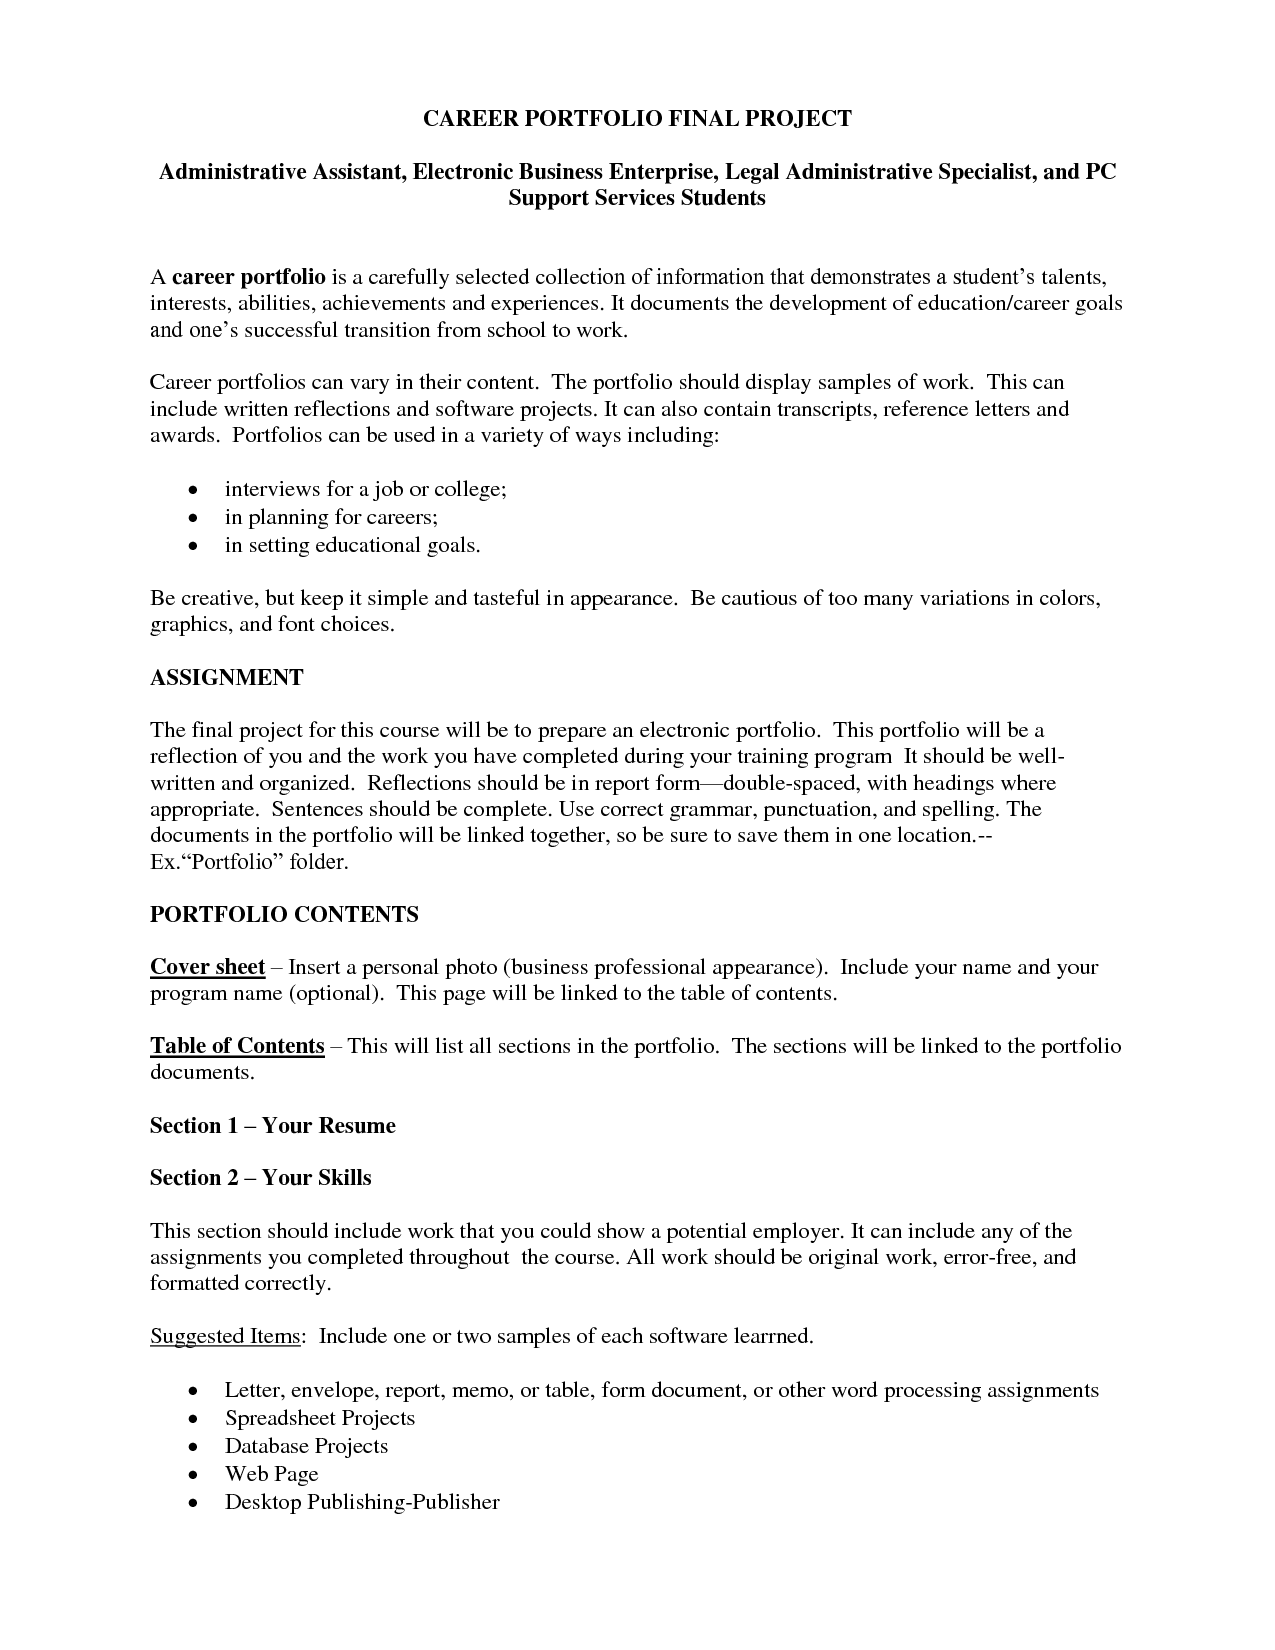 Administrative Assistant Resume Example Legal Administrative Resume Samples  Httpersumelegal